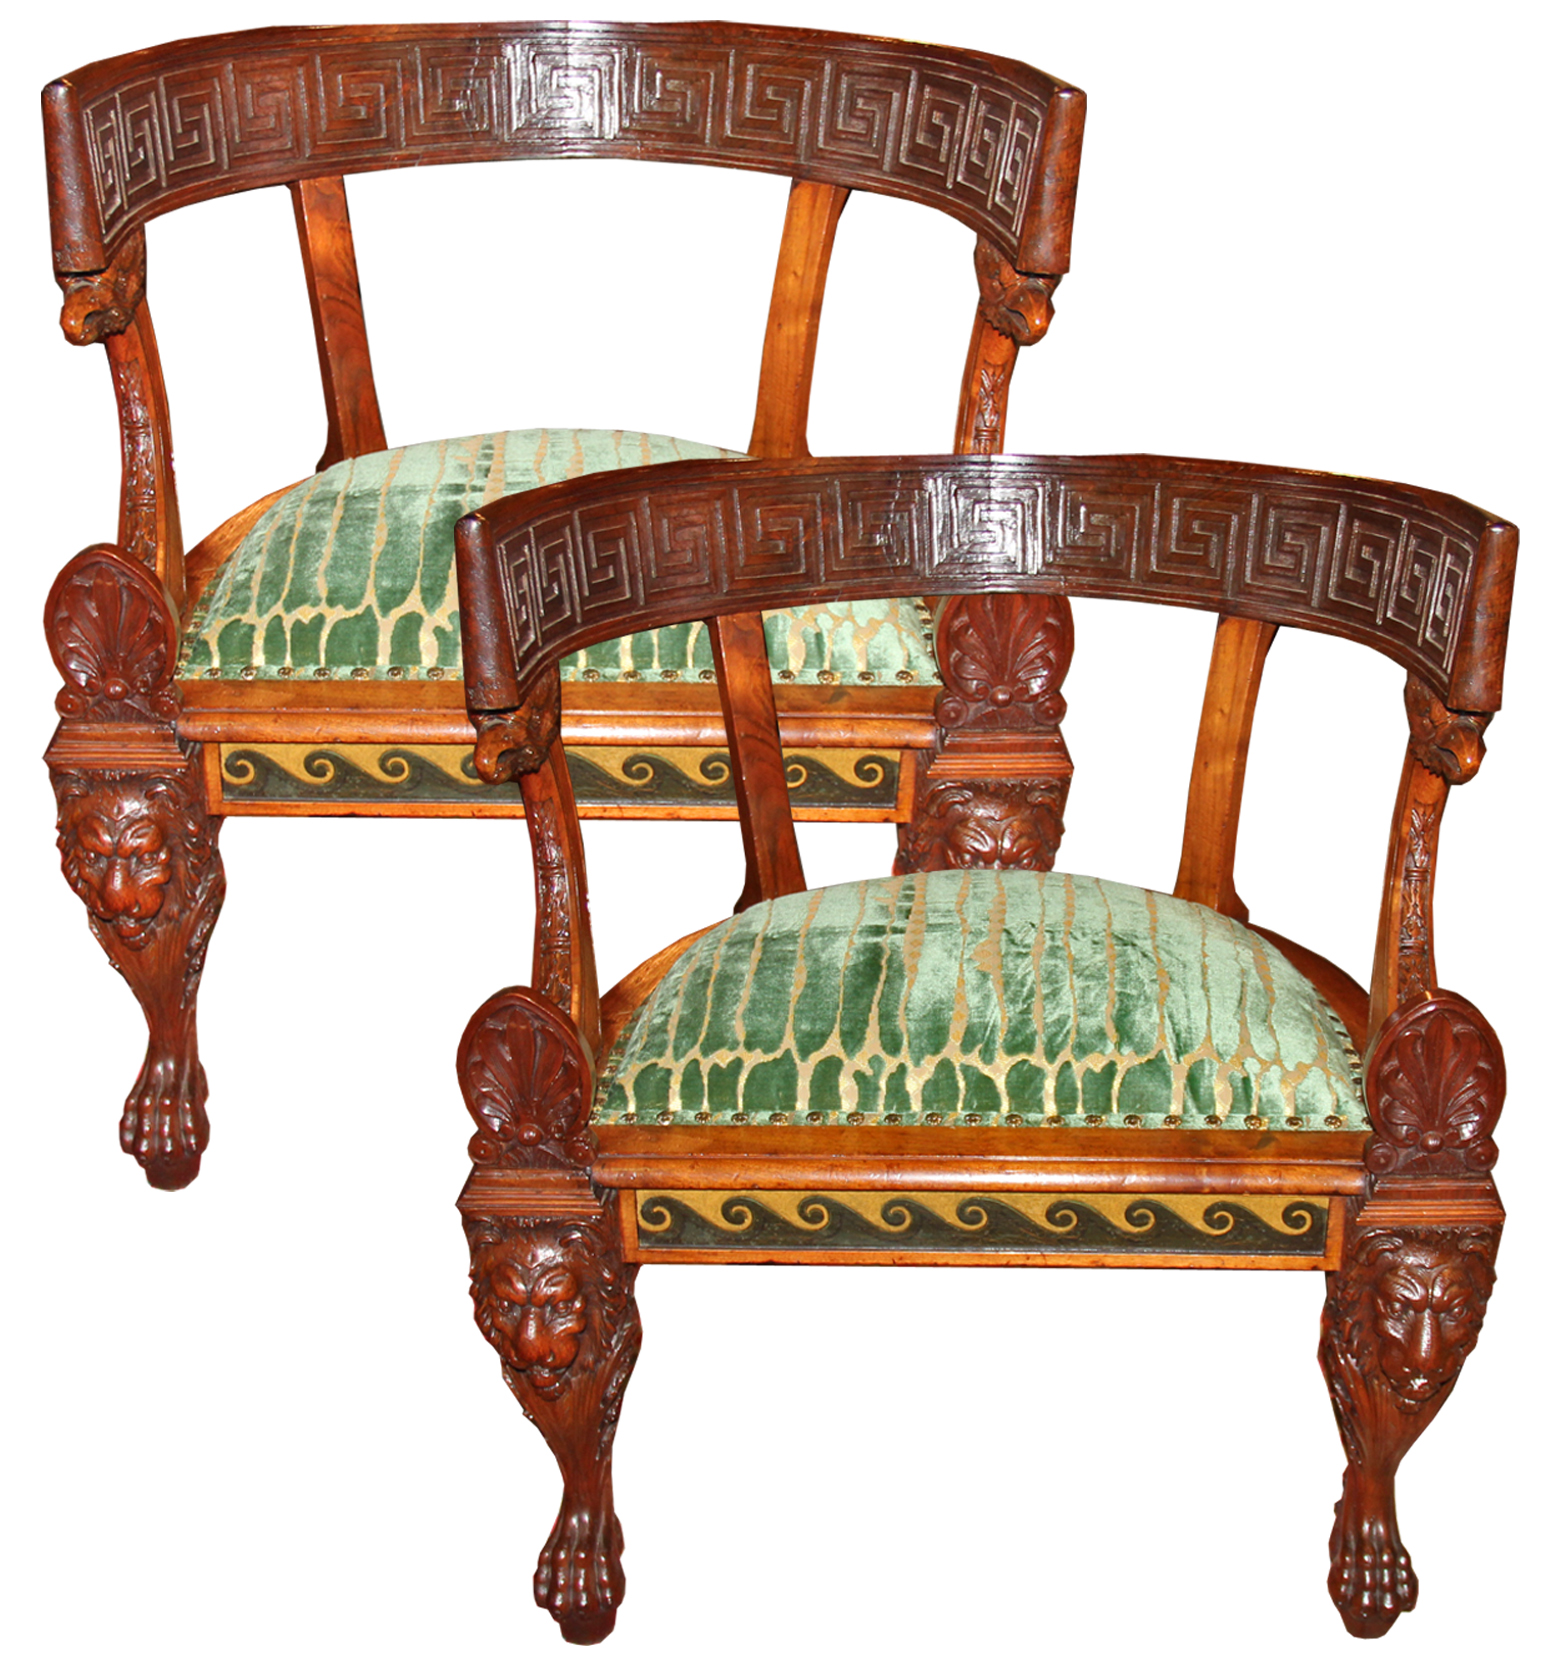 A Rare Pair of 19th Century Italian Neoclassical Rosewood Marquise Chairs No. 4463